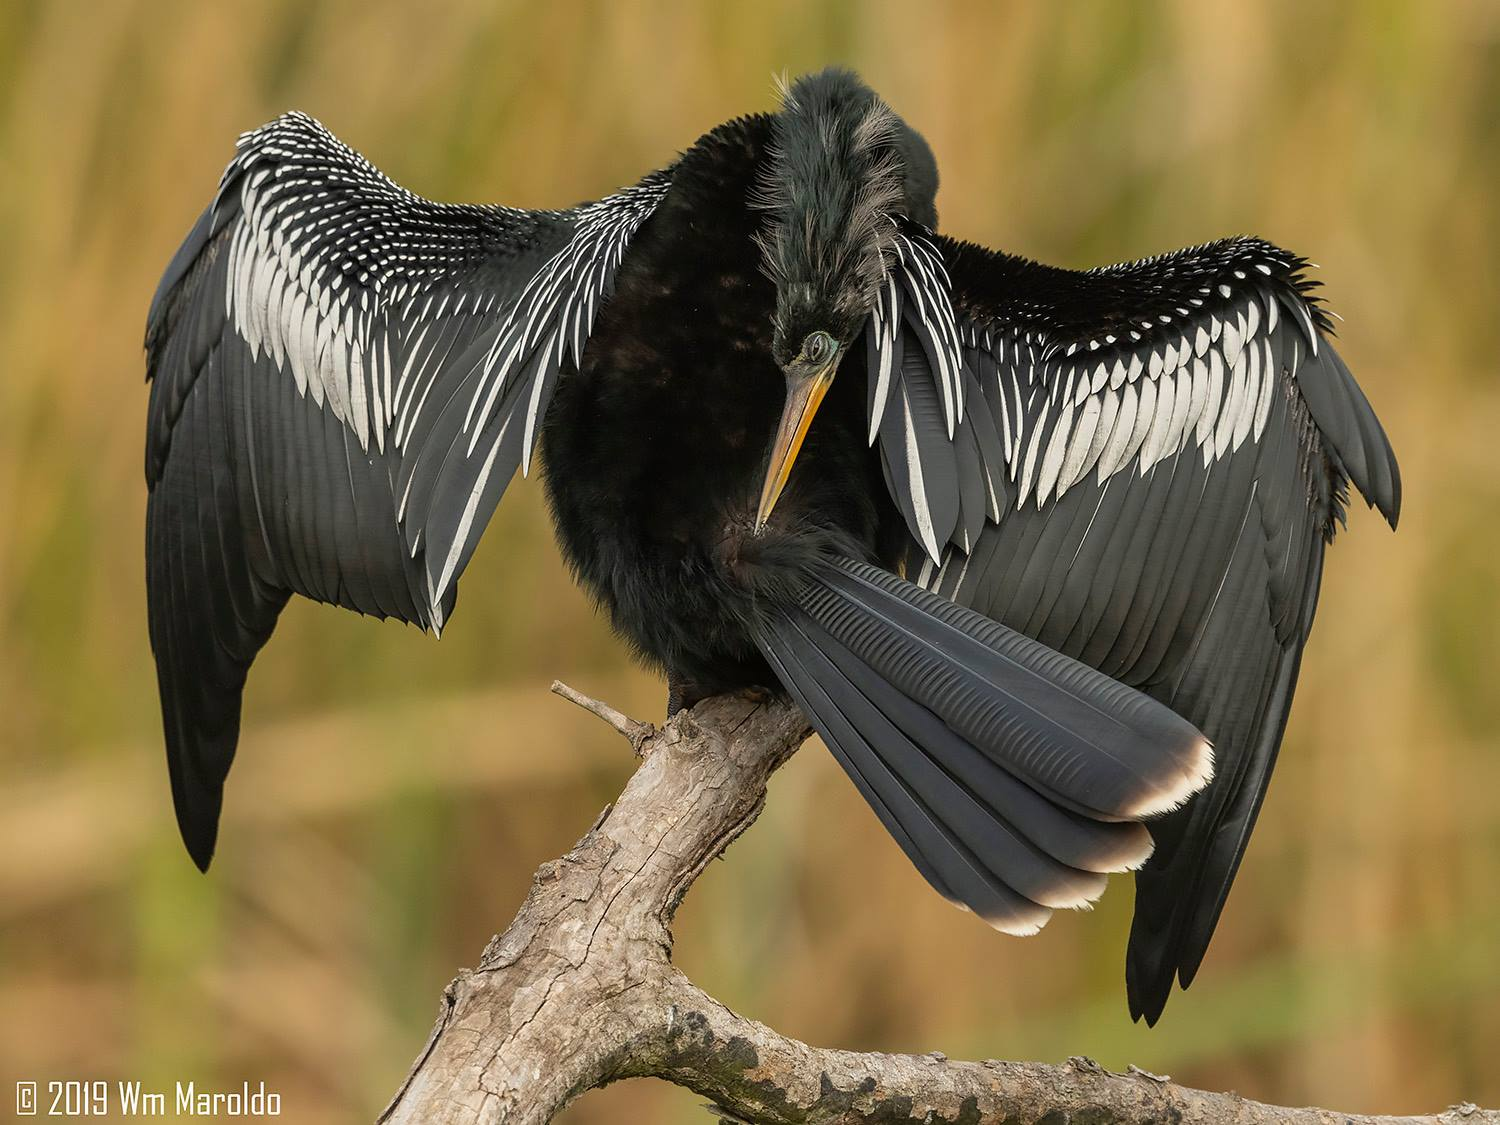 Award-winning shot of Anhinga preening by Bill Maroldo    Nikon D850 with Nikkor 500 f/4 FL VR ~ 1/2000 sec f/6.3 ISO 1250; hand-held